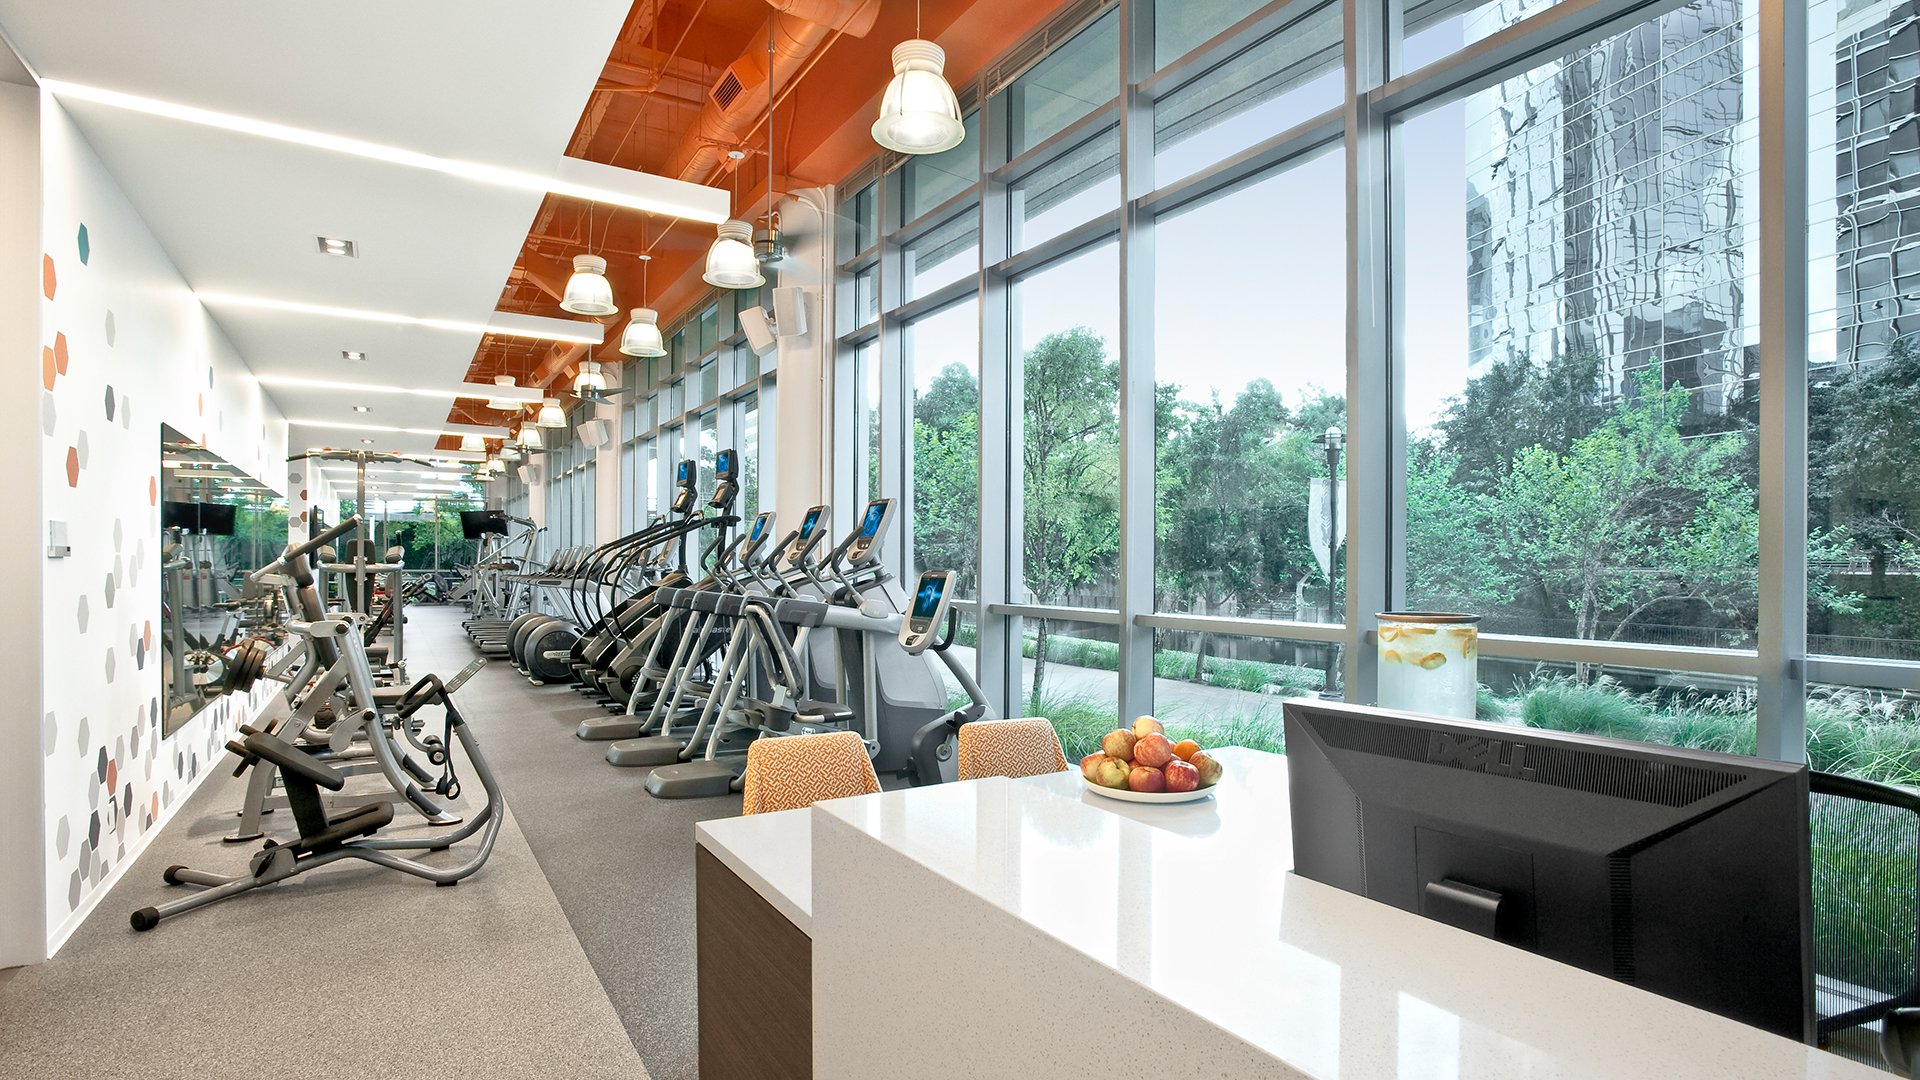 Corporate Interior Design Fitness Center Newfield Fitness Center Cardio Machines Natural Light Floor to Ceiling Windows